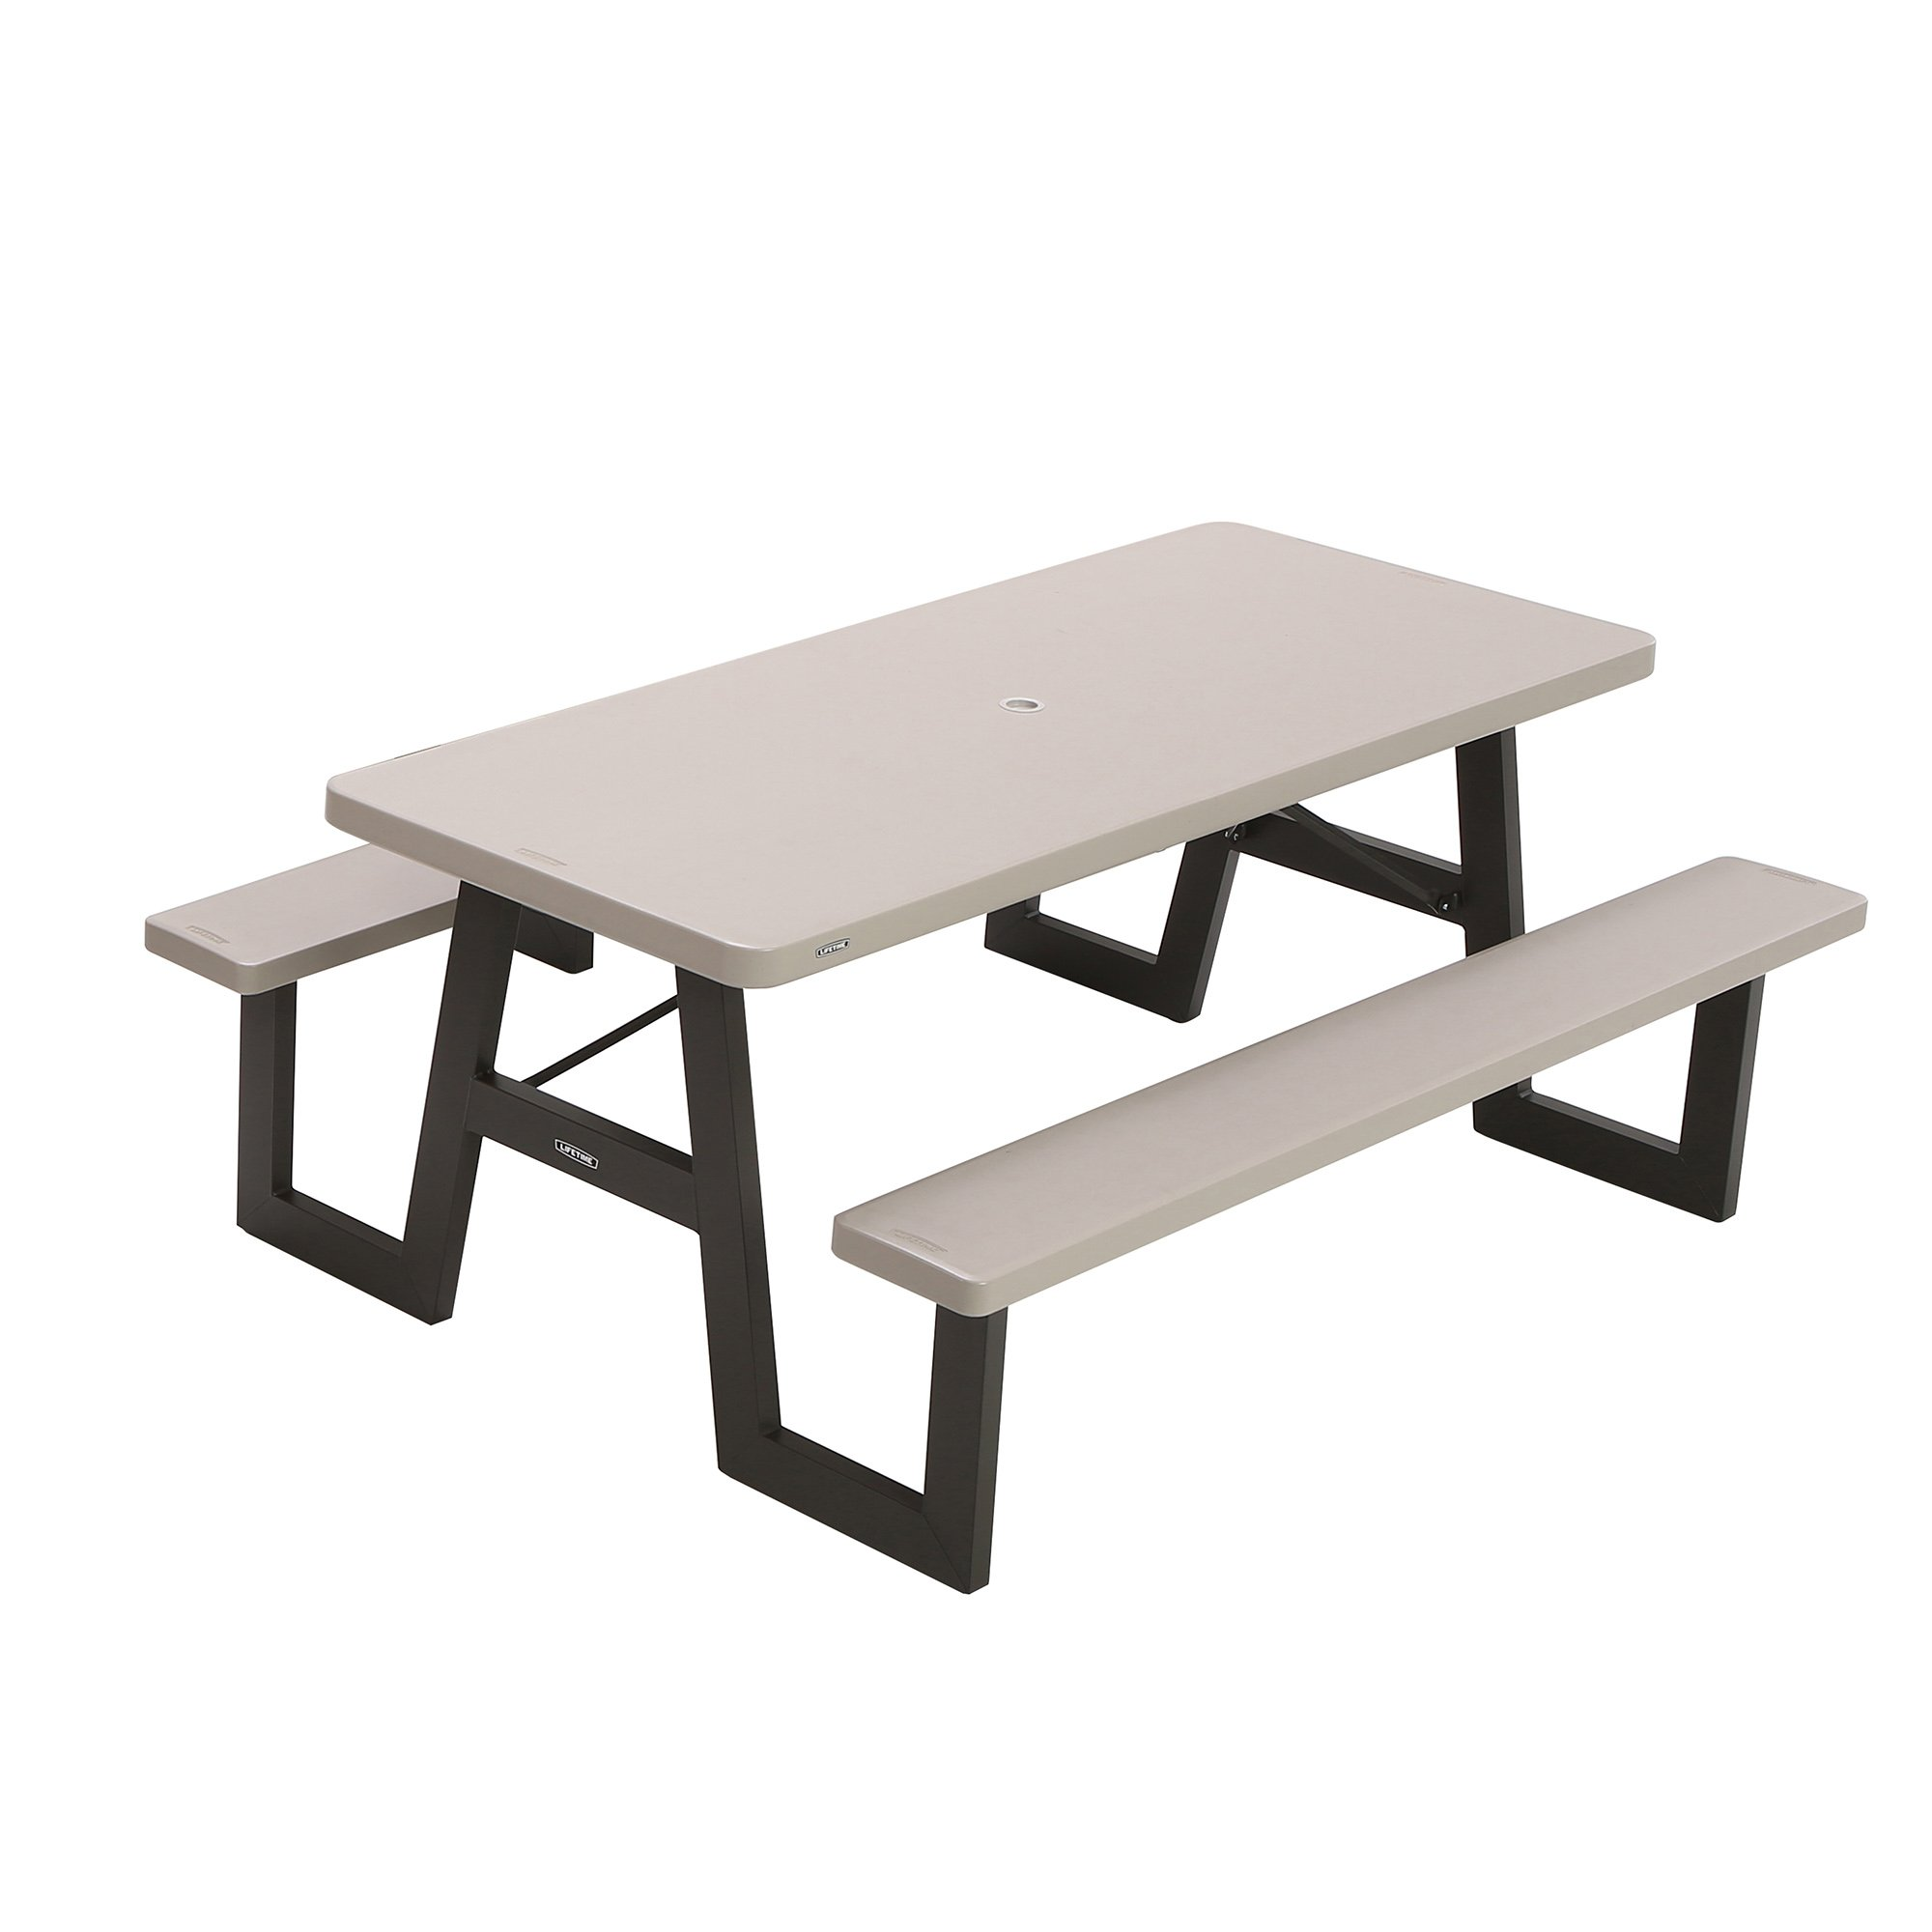 lunch plastic for fold tables picnic folding rate bench attached lifetime down lab outdoor with tags backyard benches top table furniture foot bistro round walmart first products